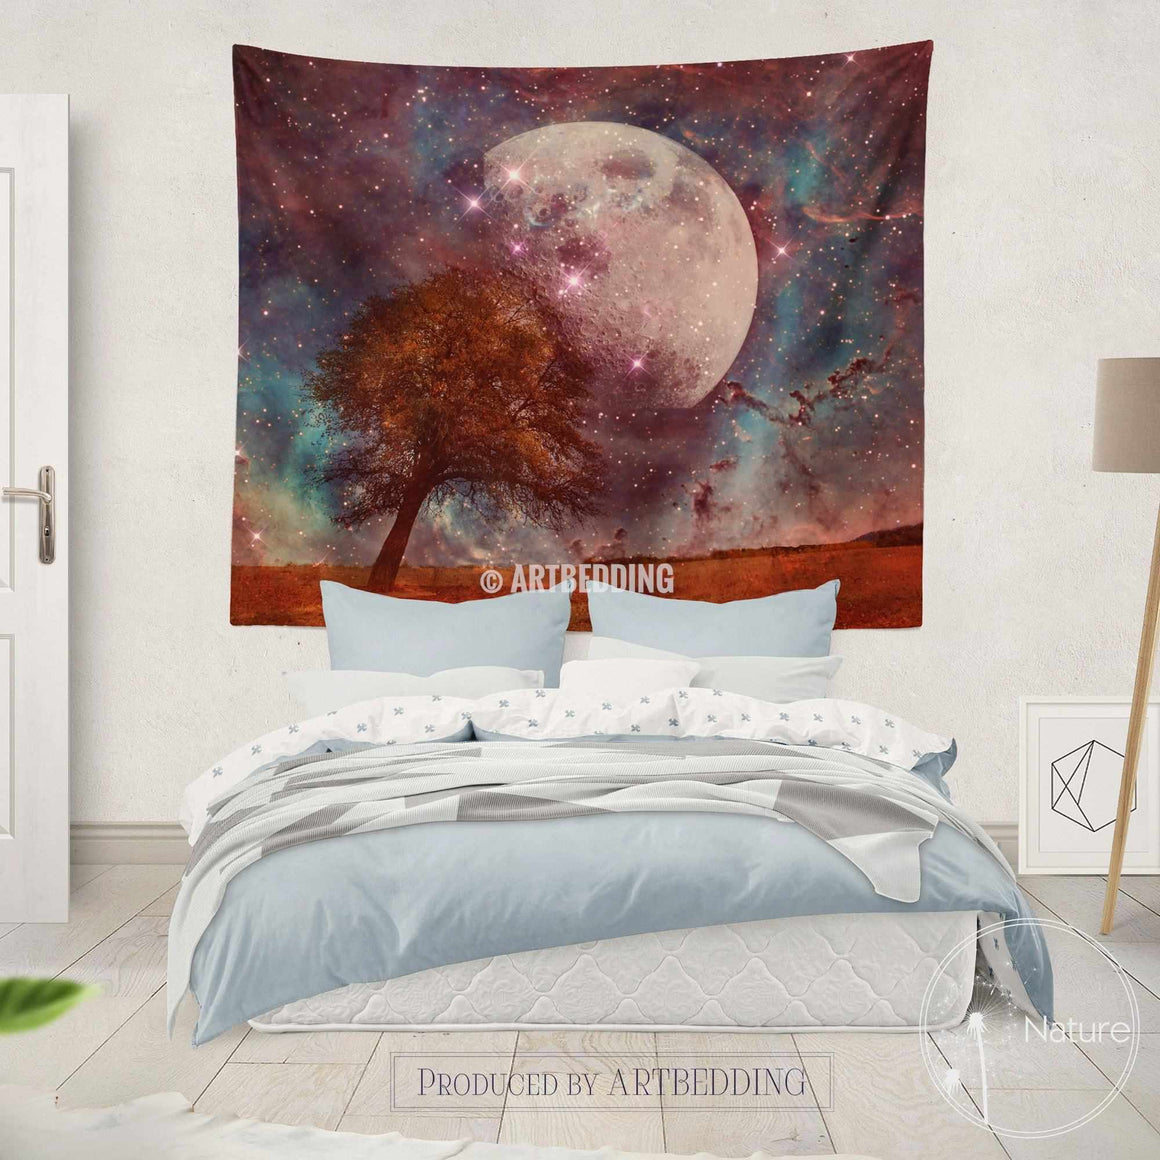 Full moon wall tapestry, moon and stars wall tapestries, fantasy moon wall hanging, moon wall decor, magical night sky nature wall decor, bohemian interior